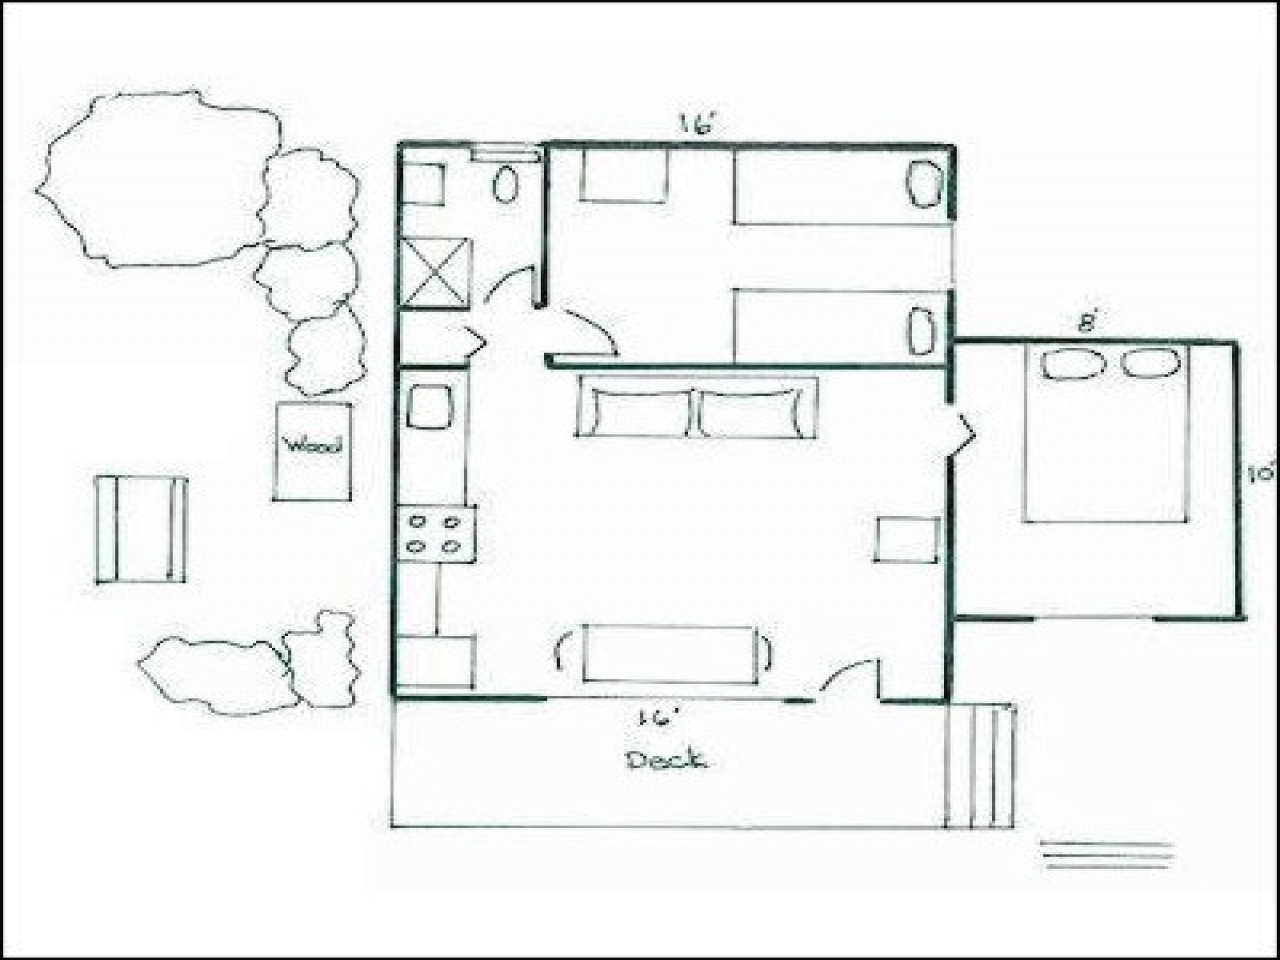 Small 2 bedroom cottage plans 2 br cottage plans two 2 bed bungalow plans